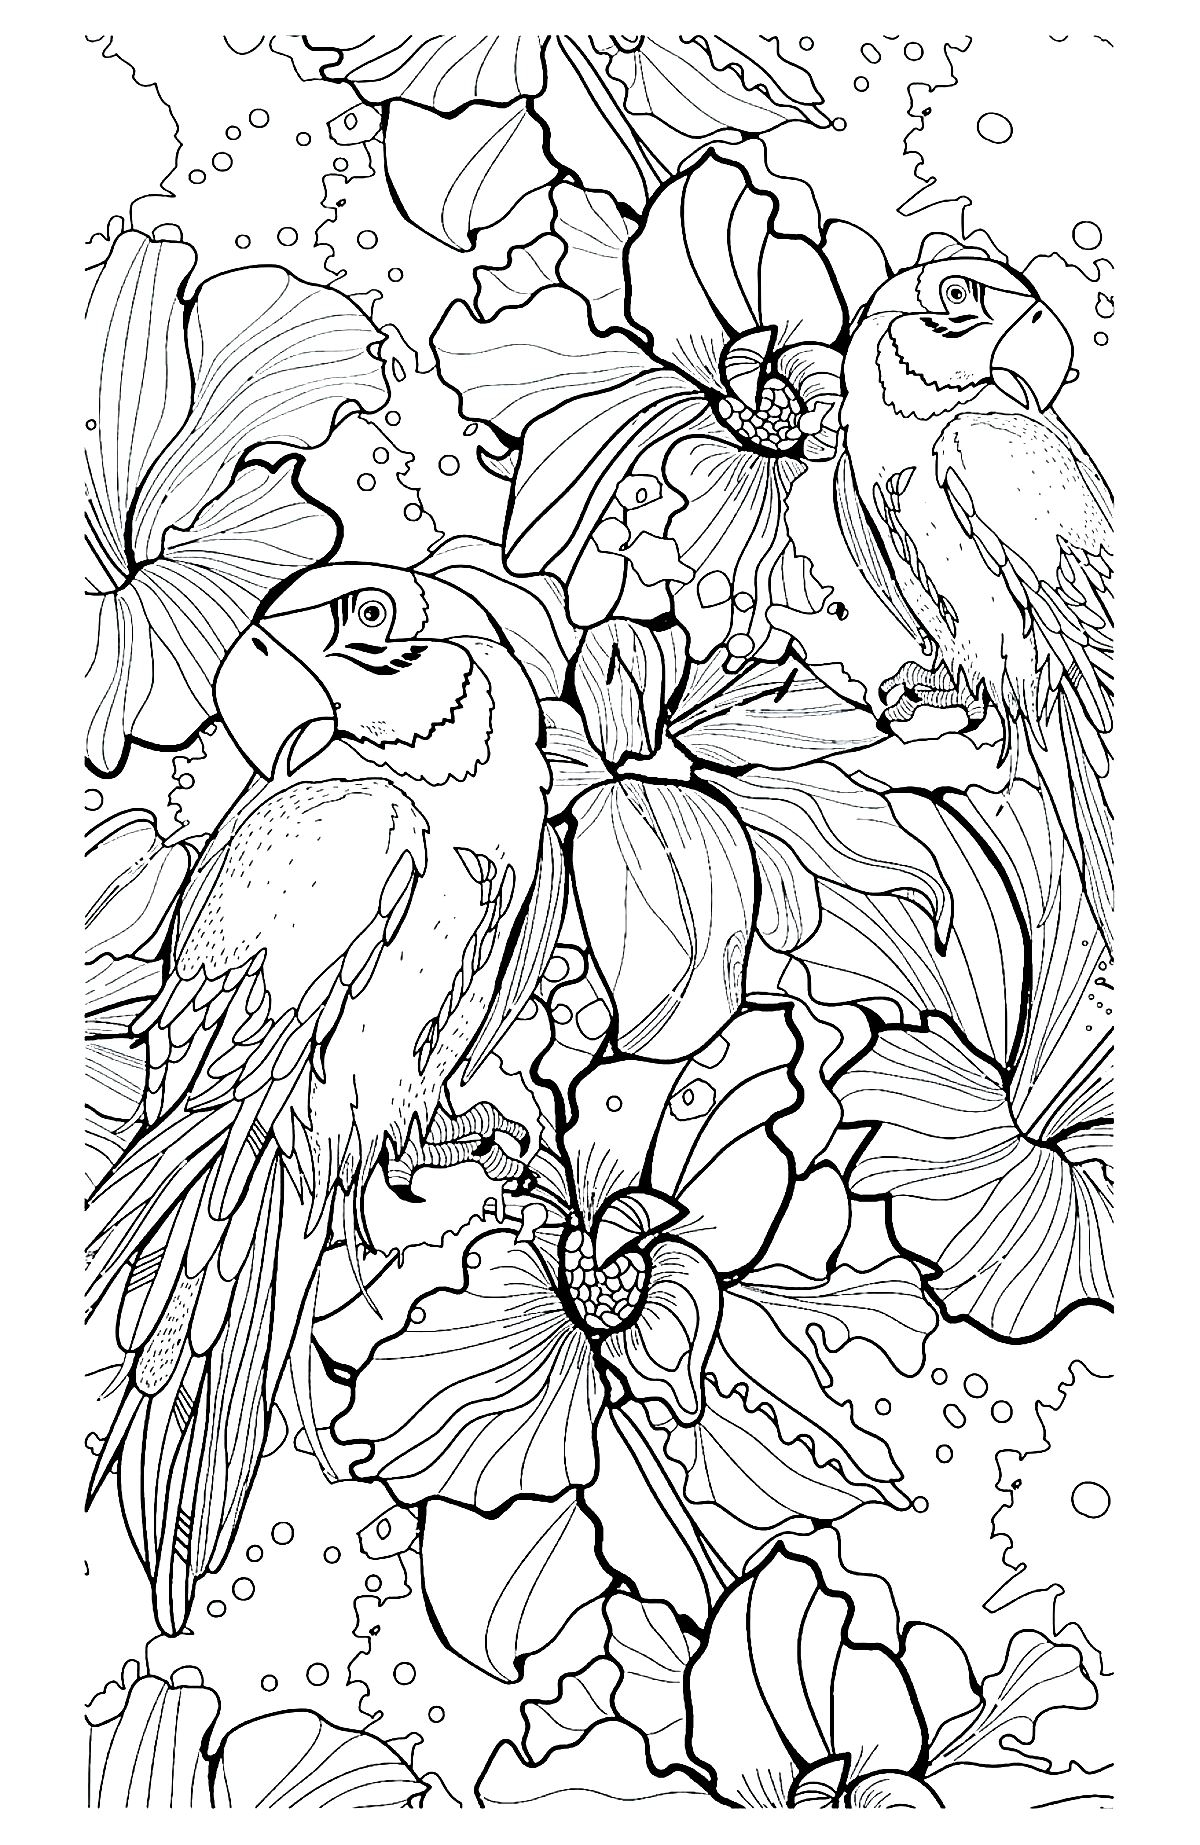 Complex Coloring Pages - Plex Coloring Pages Animals Coloring Home